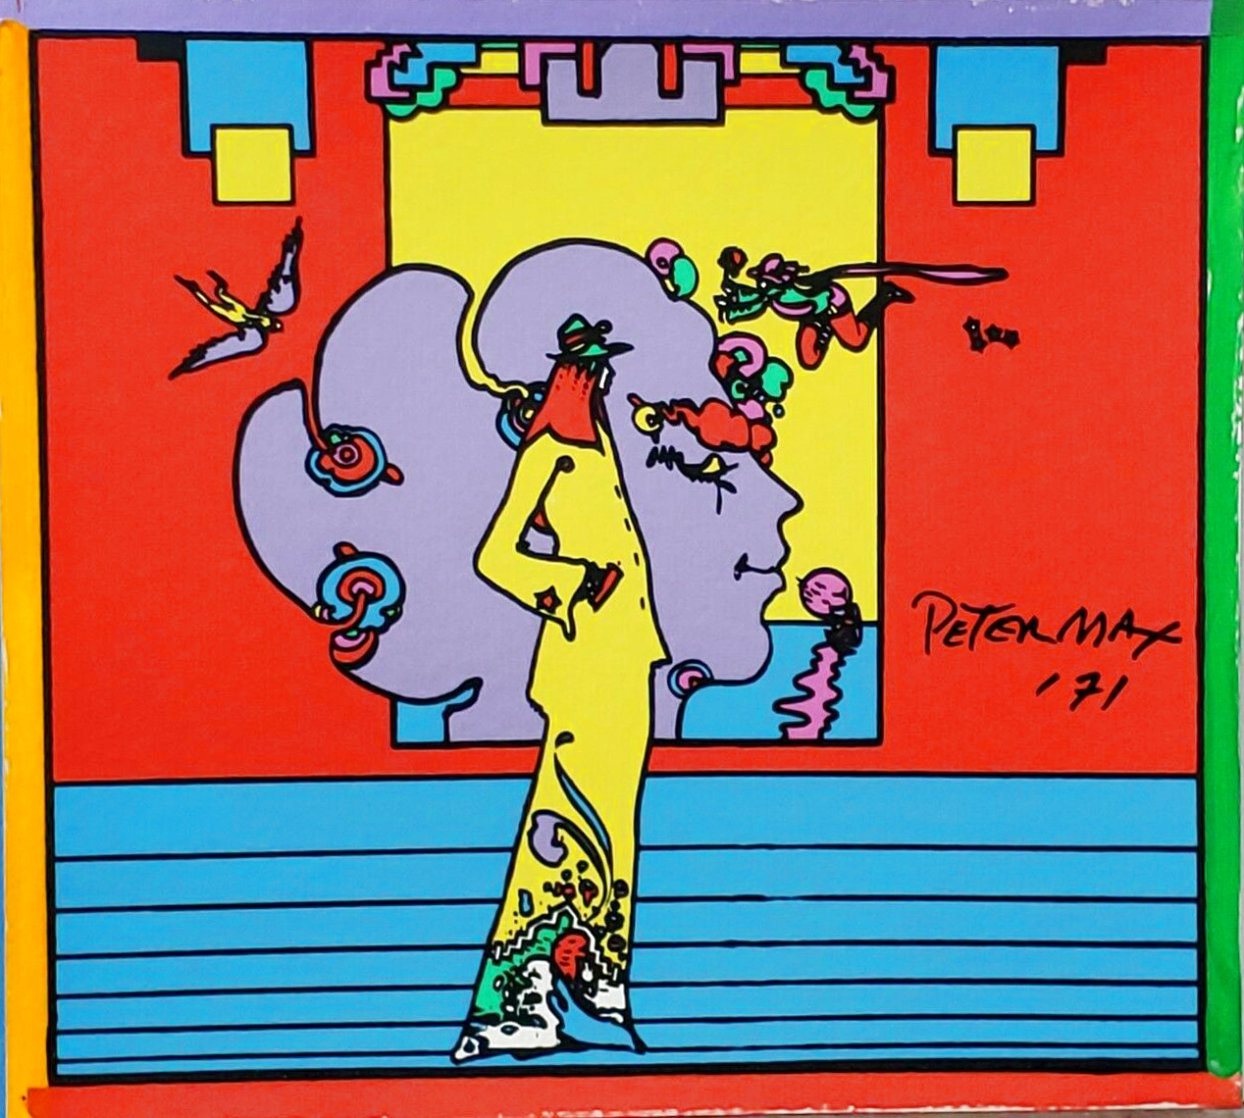 Atlantis Suite of 4 Vintage Mixed Media Prints Unique, 1971  Embellished Limited Edition Print by Peter Max